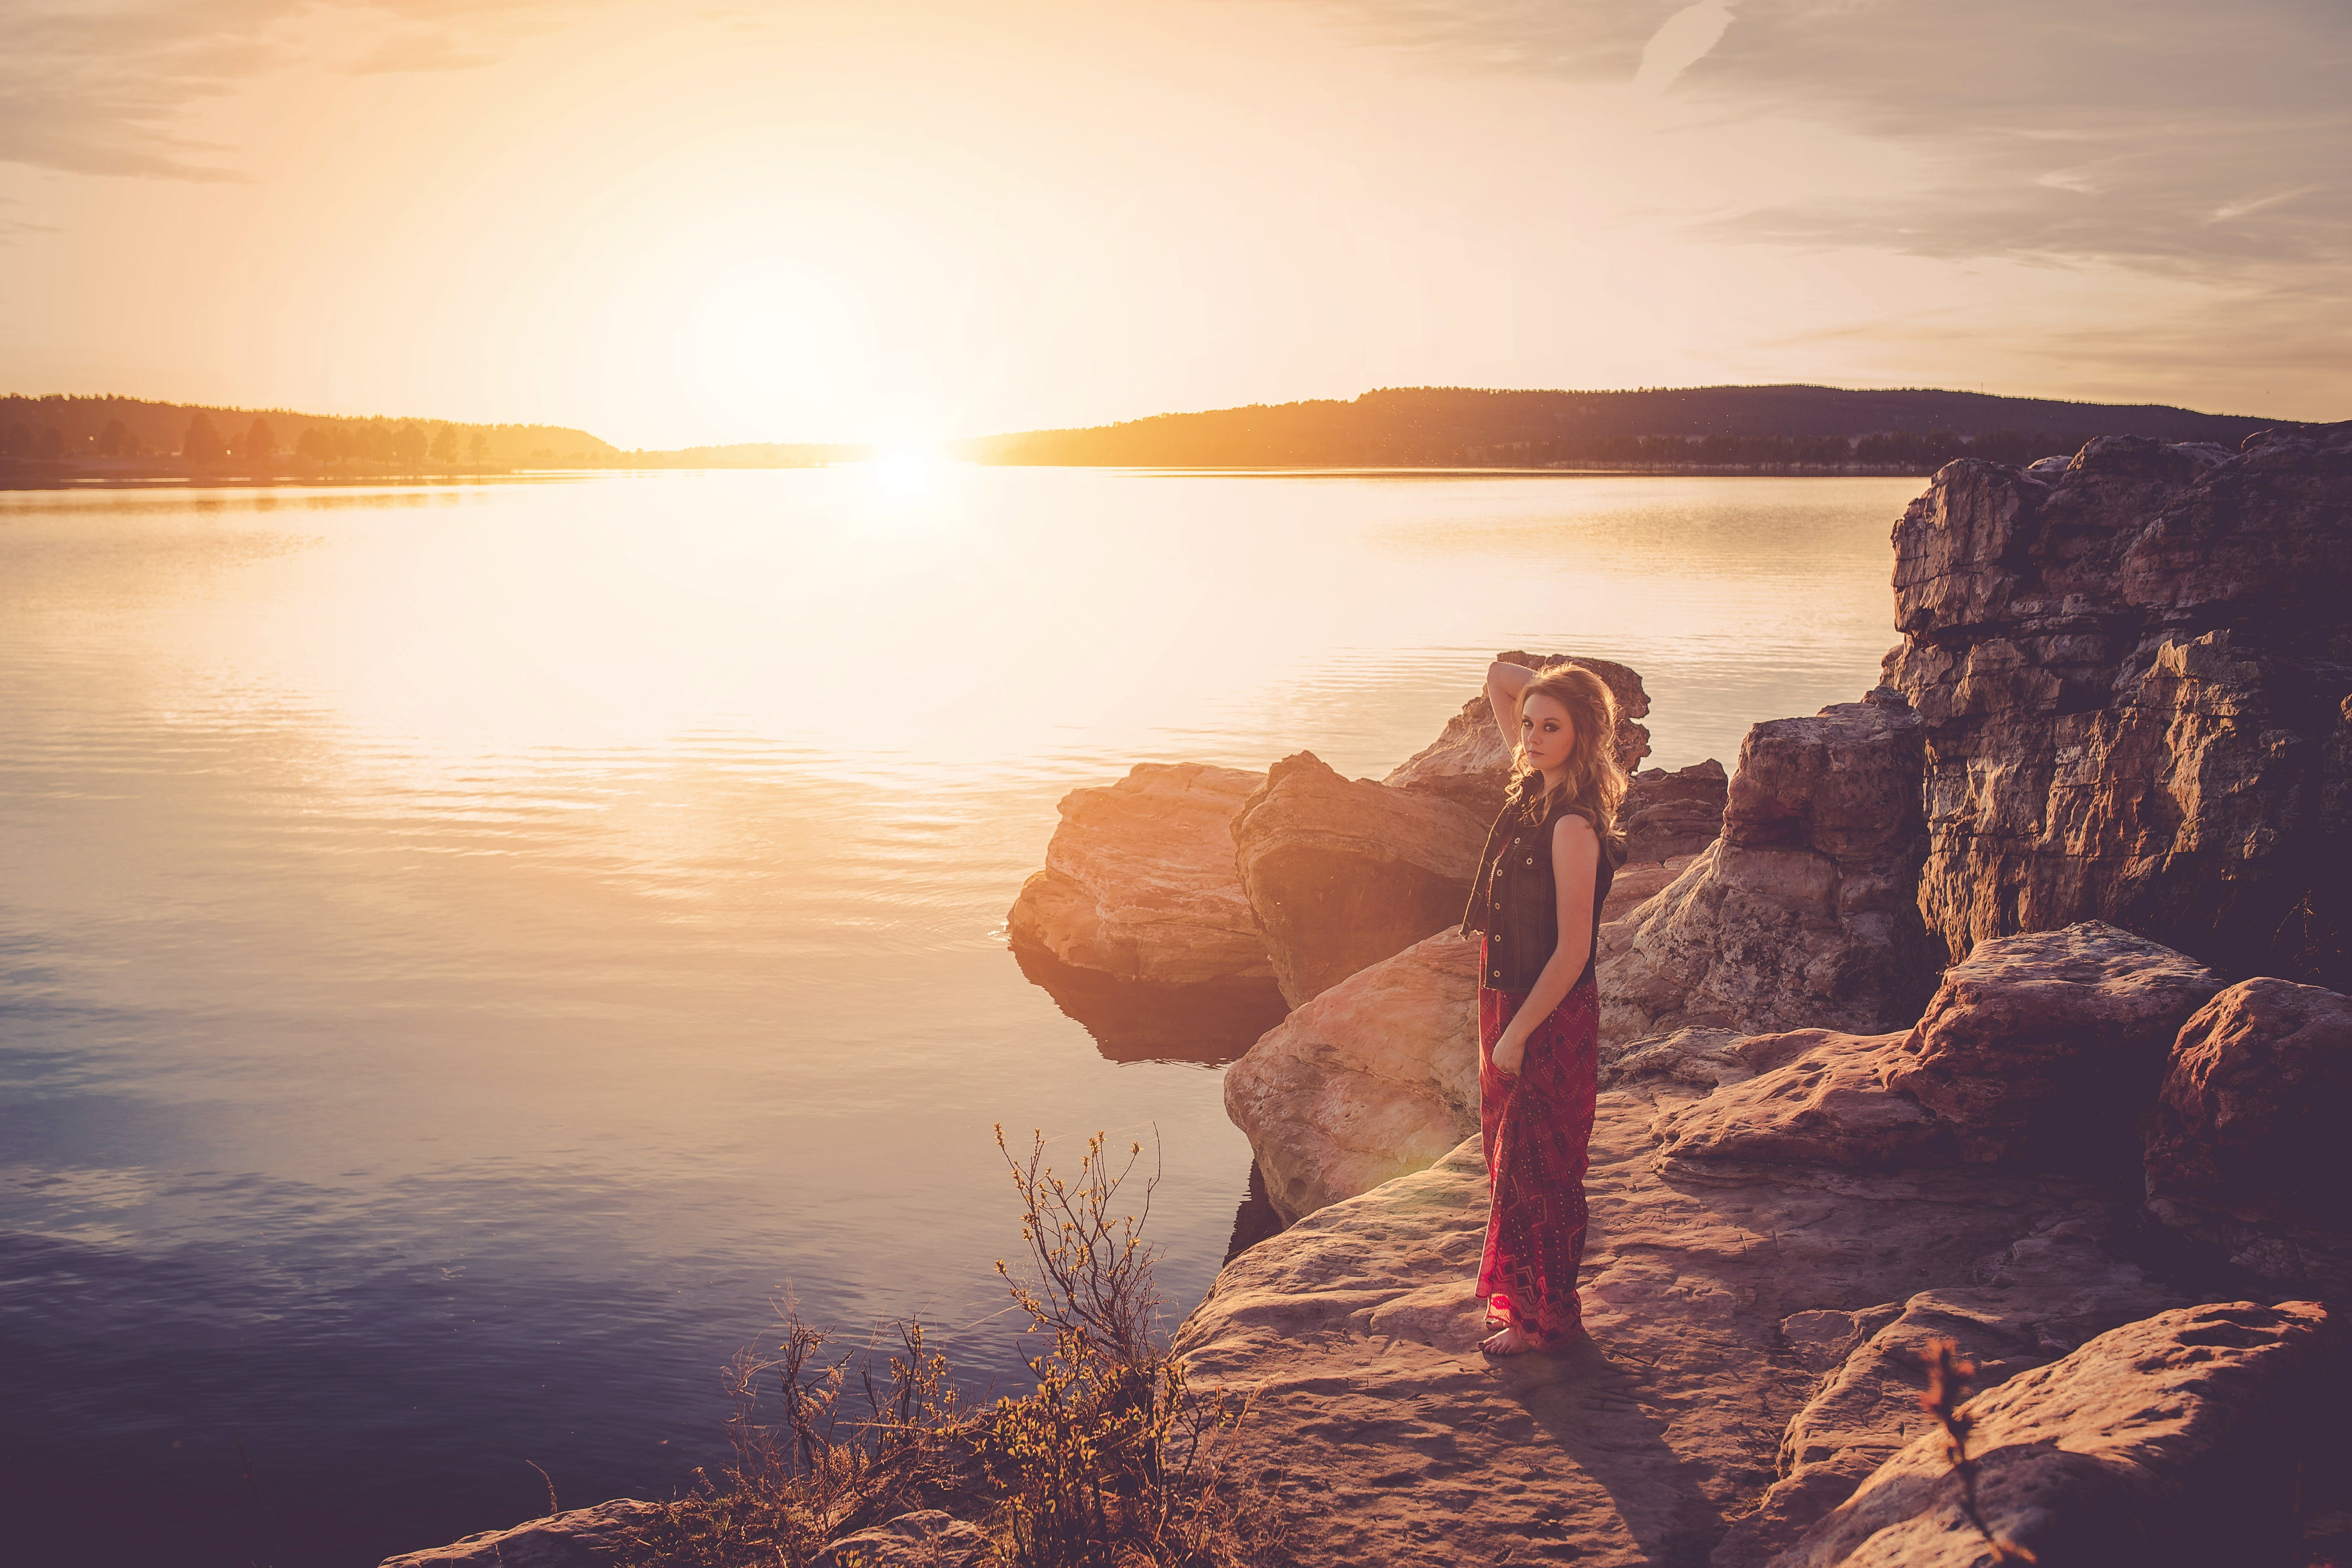 Woman in Black and Red Sleeveless Dress Standing Near Large Body of Water during Sunset